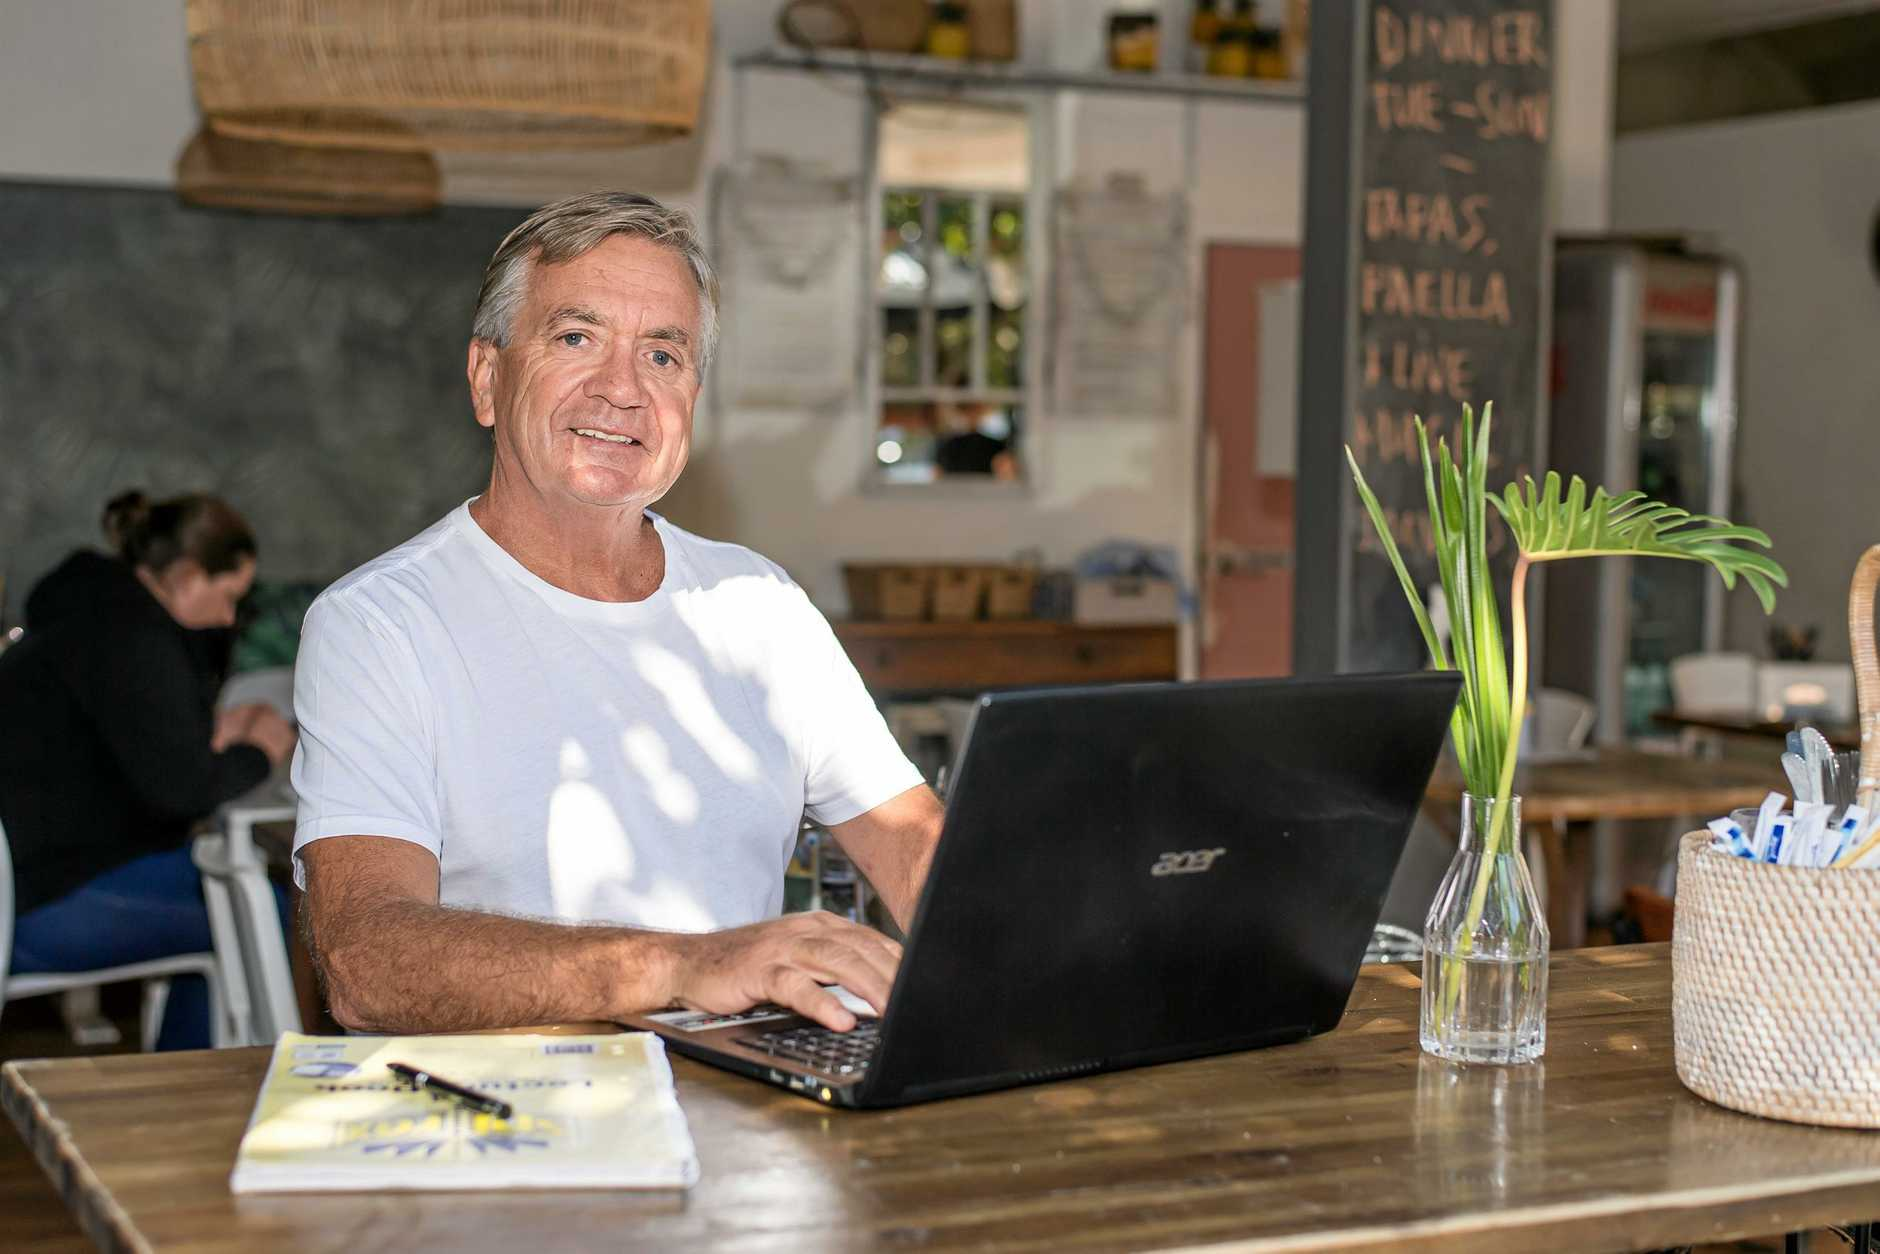 Noosa's Greg Holman has penned a fiction book loosely based on his life.